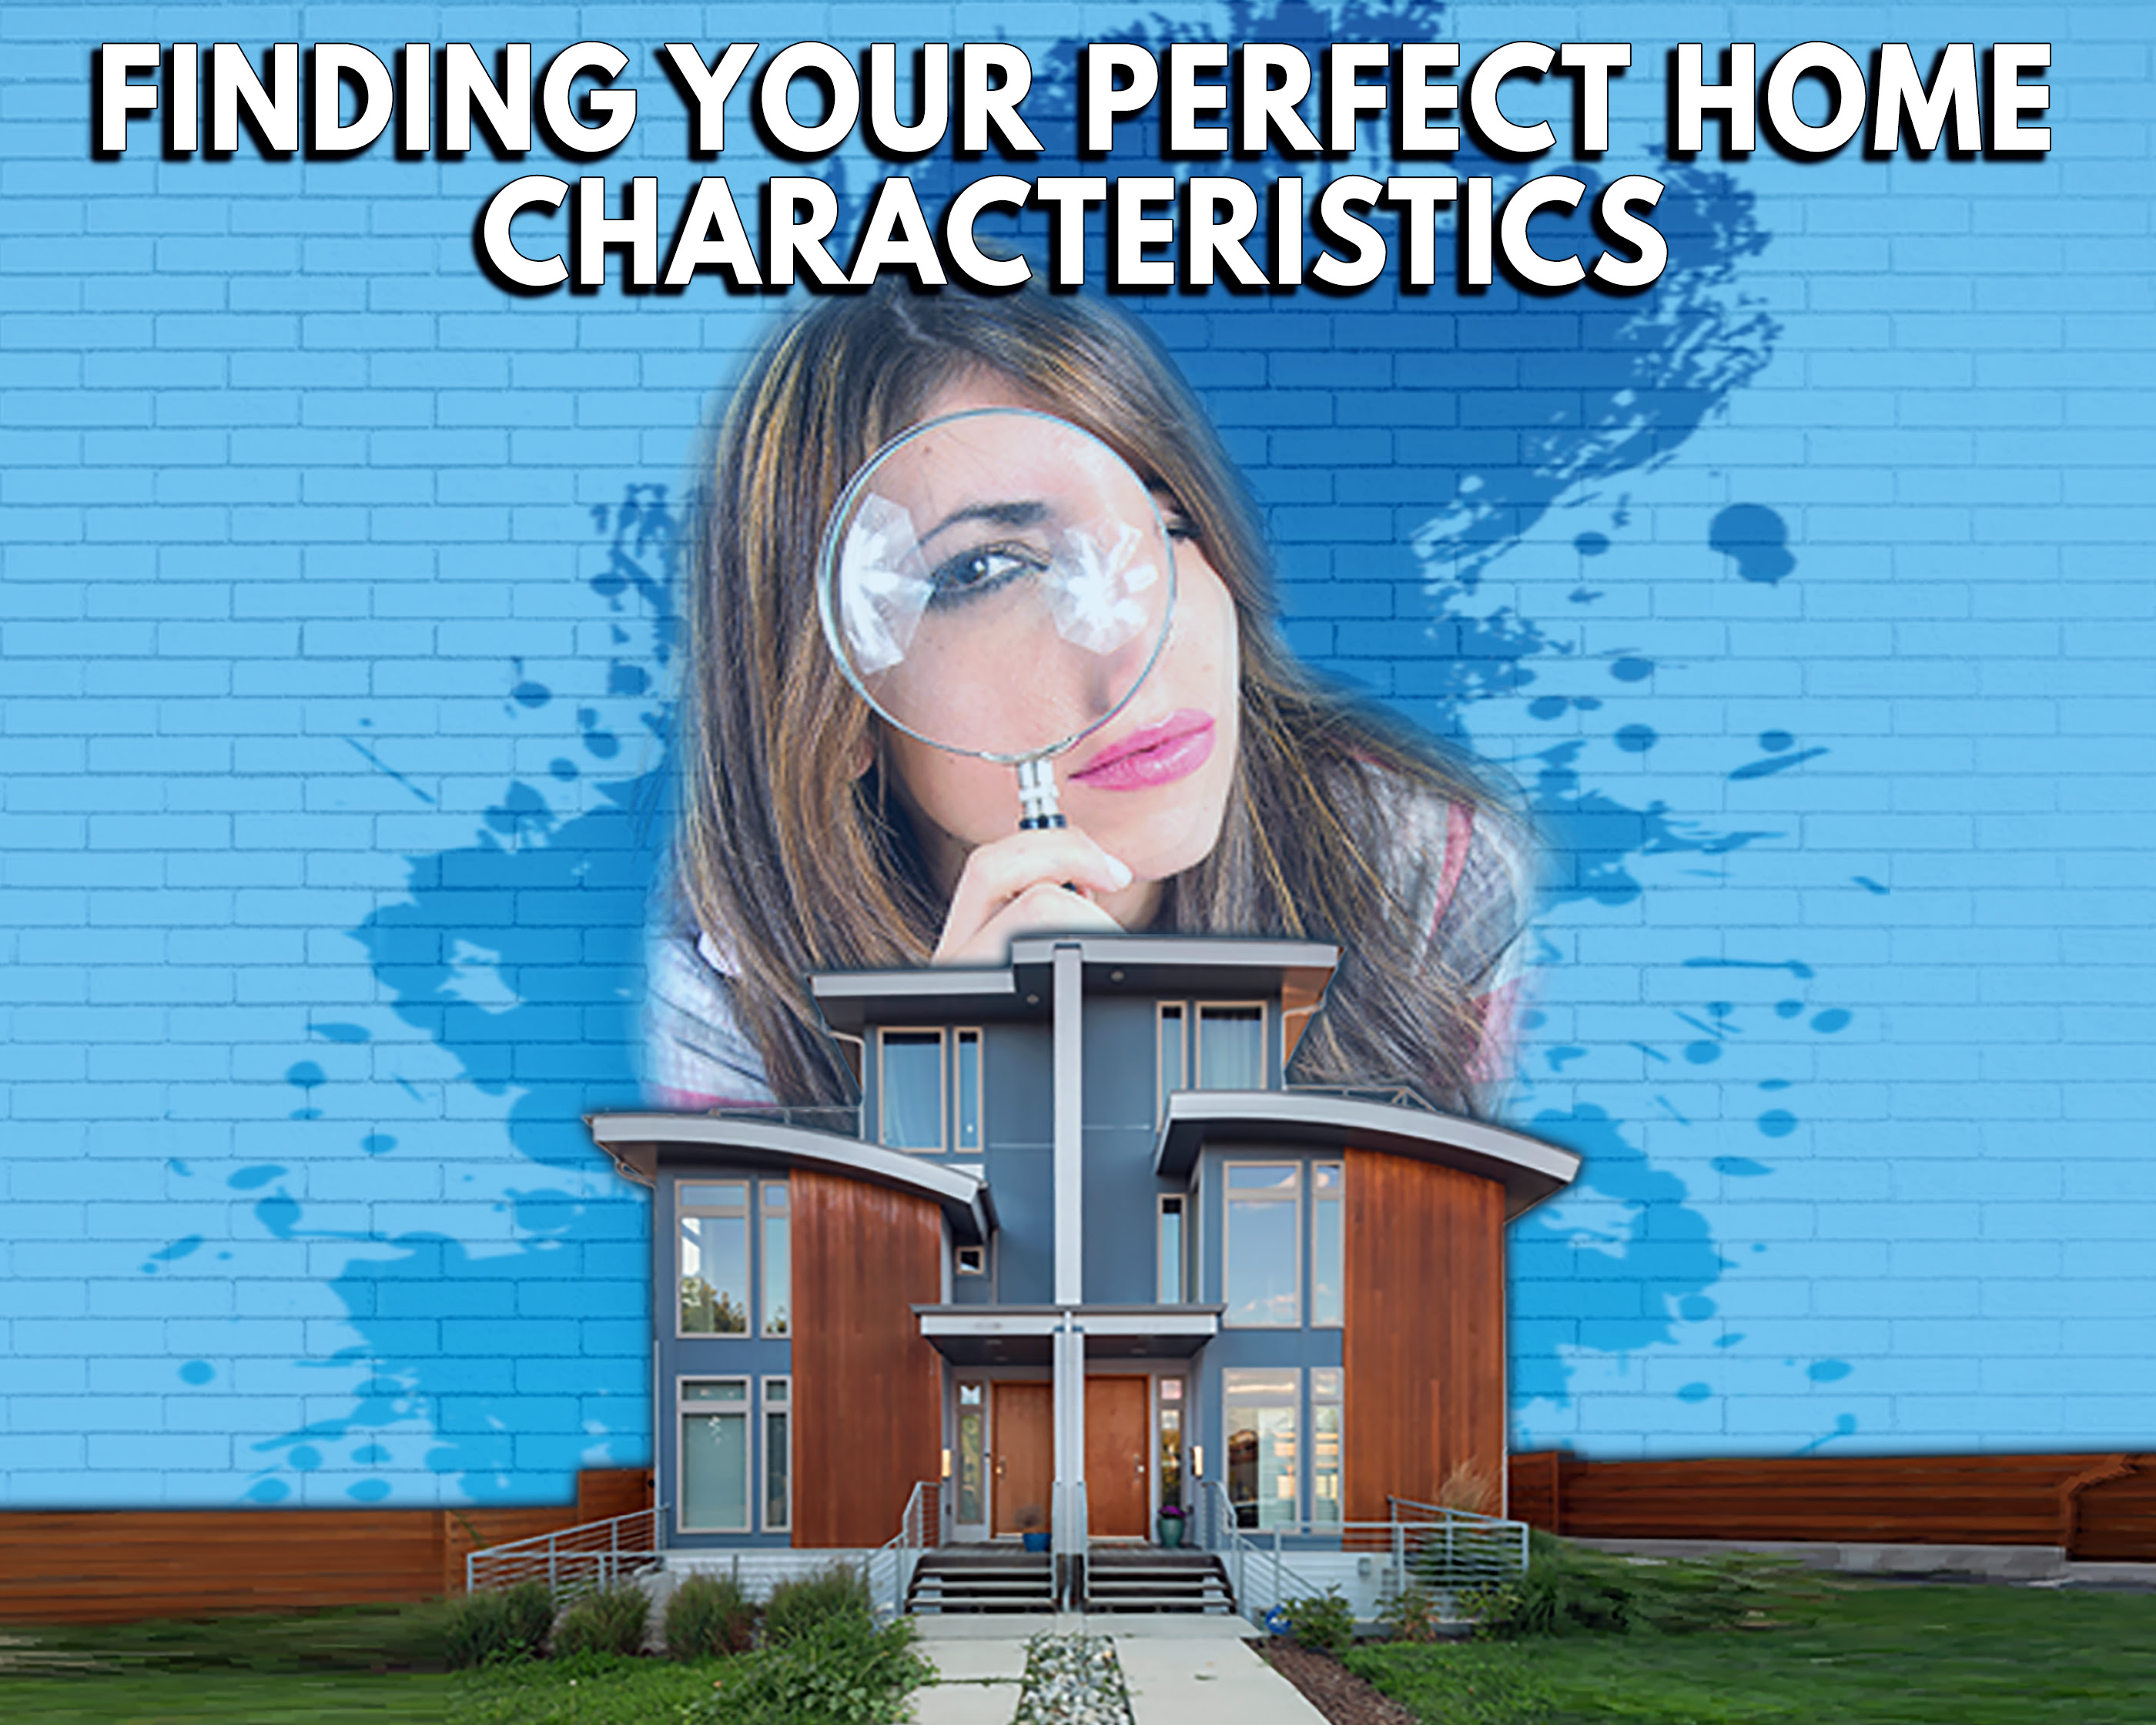 What Are The Characteristics Of Your Perfect Home Denver Real Estate